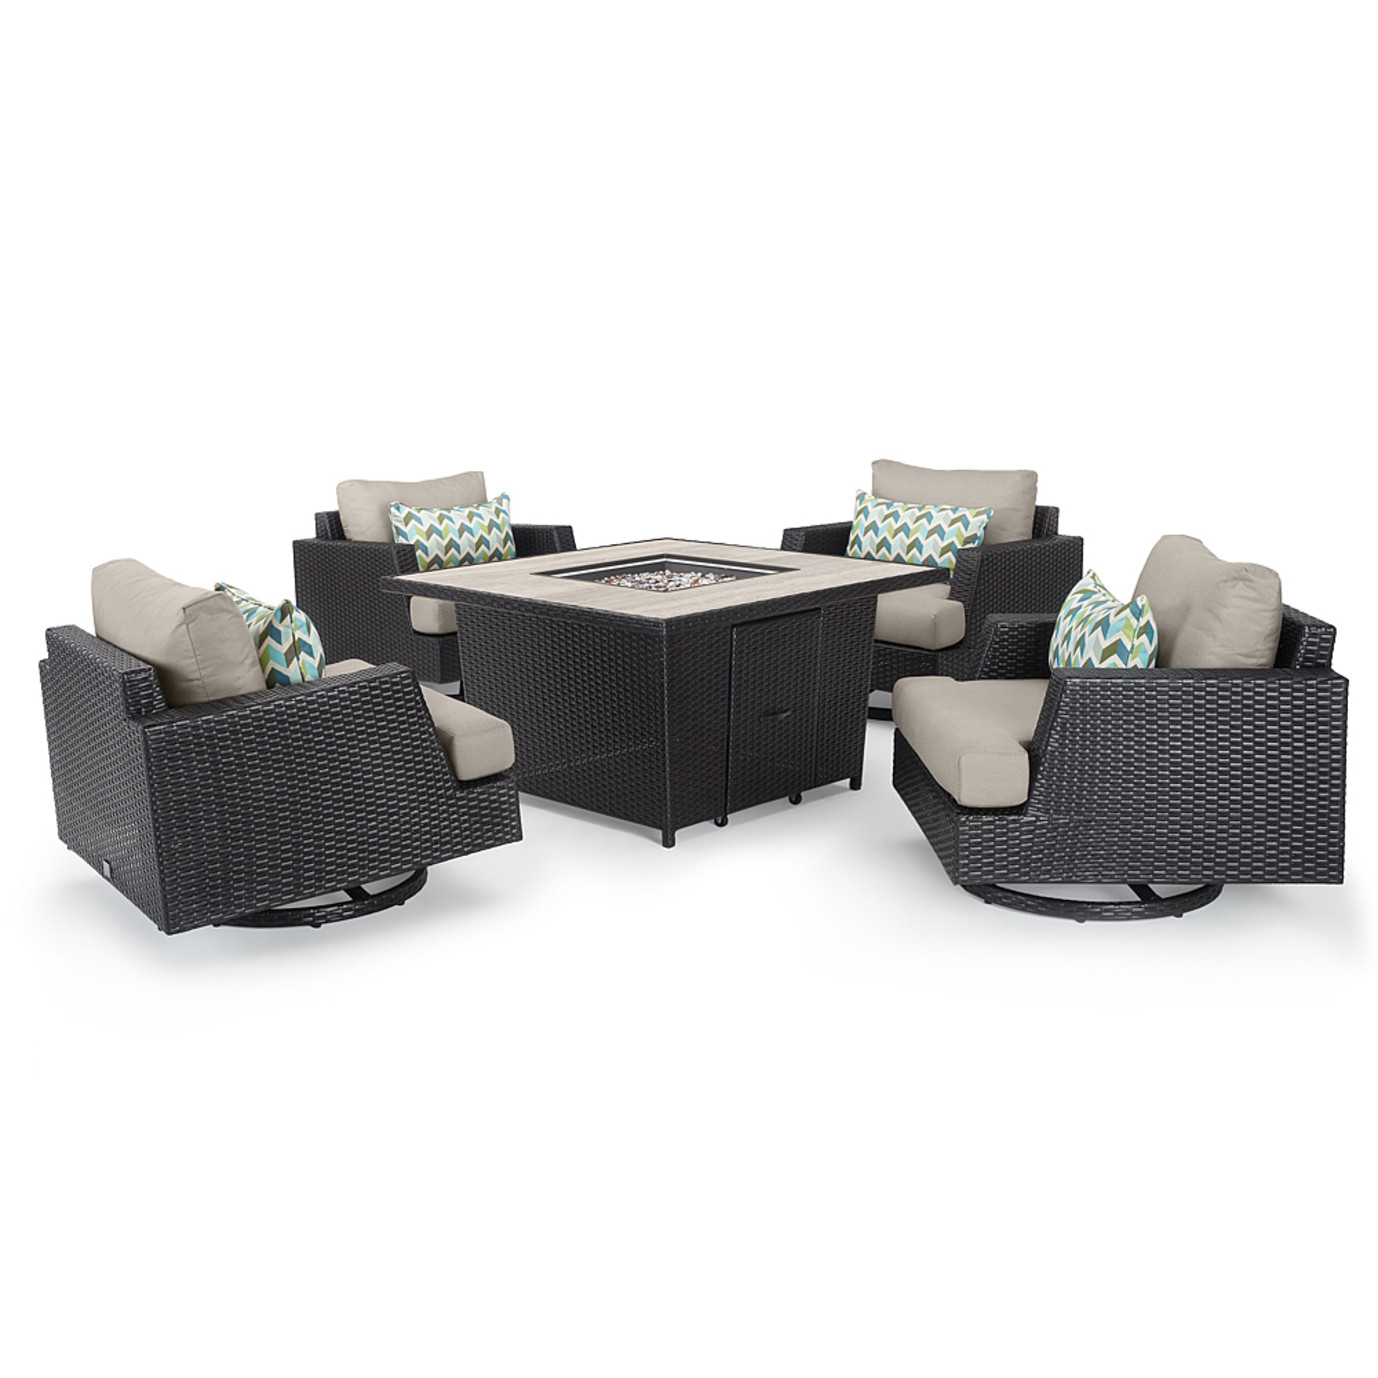 Portofino™ Comfort 5pc Fire Chat Set - Espresso Taupe